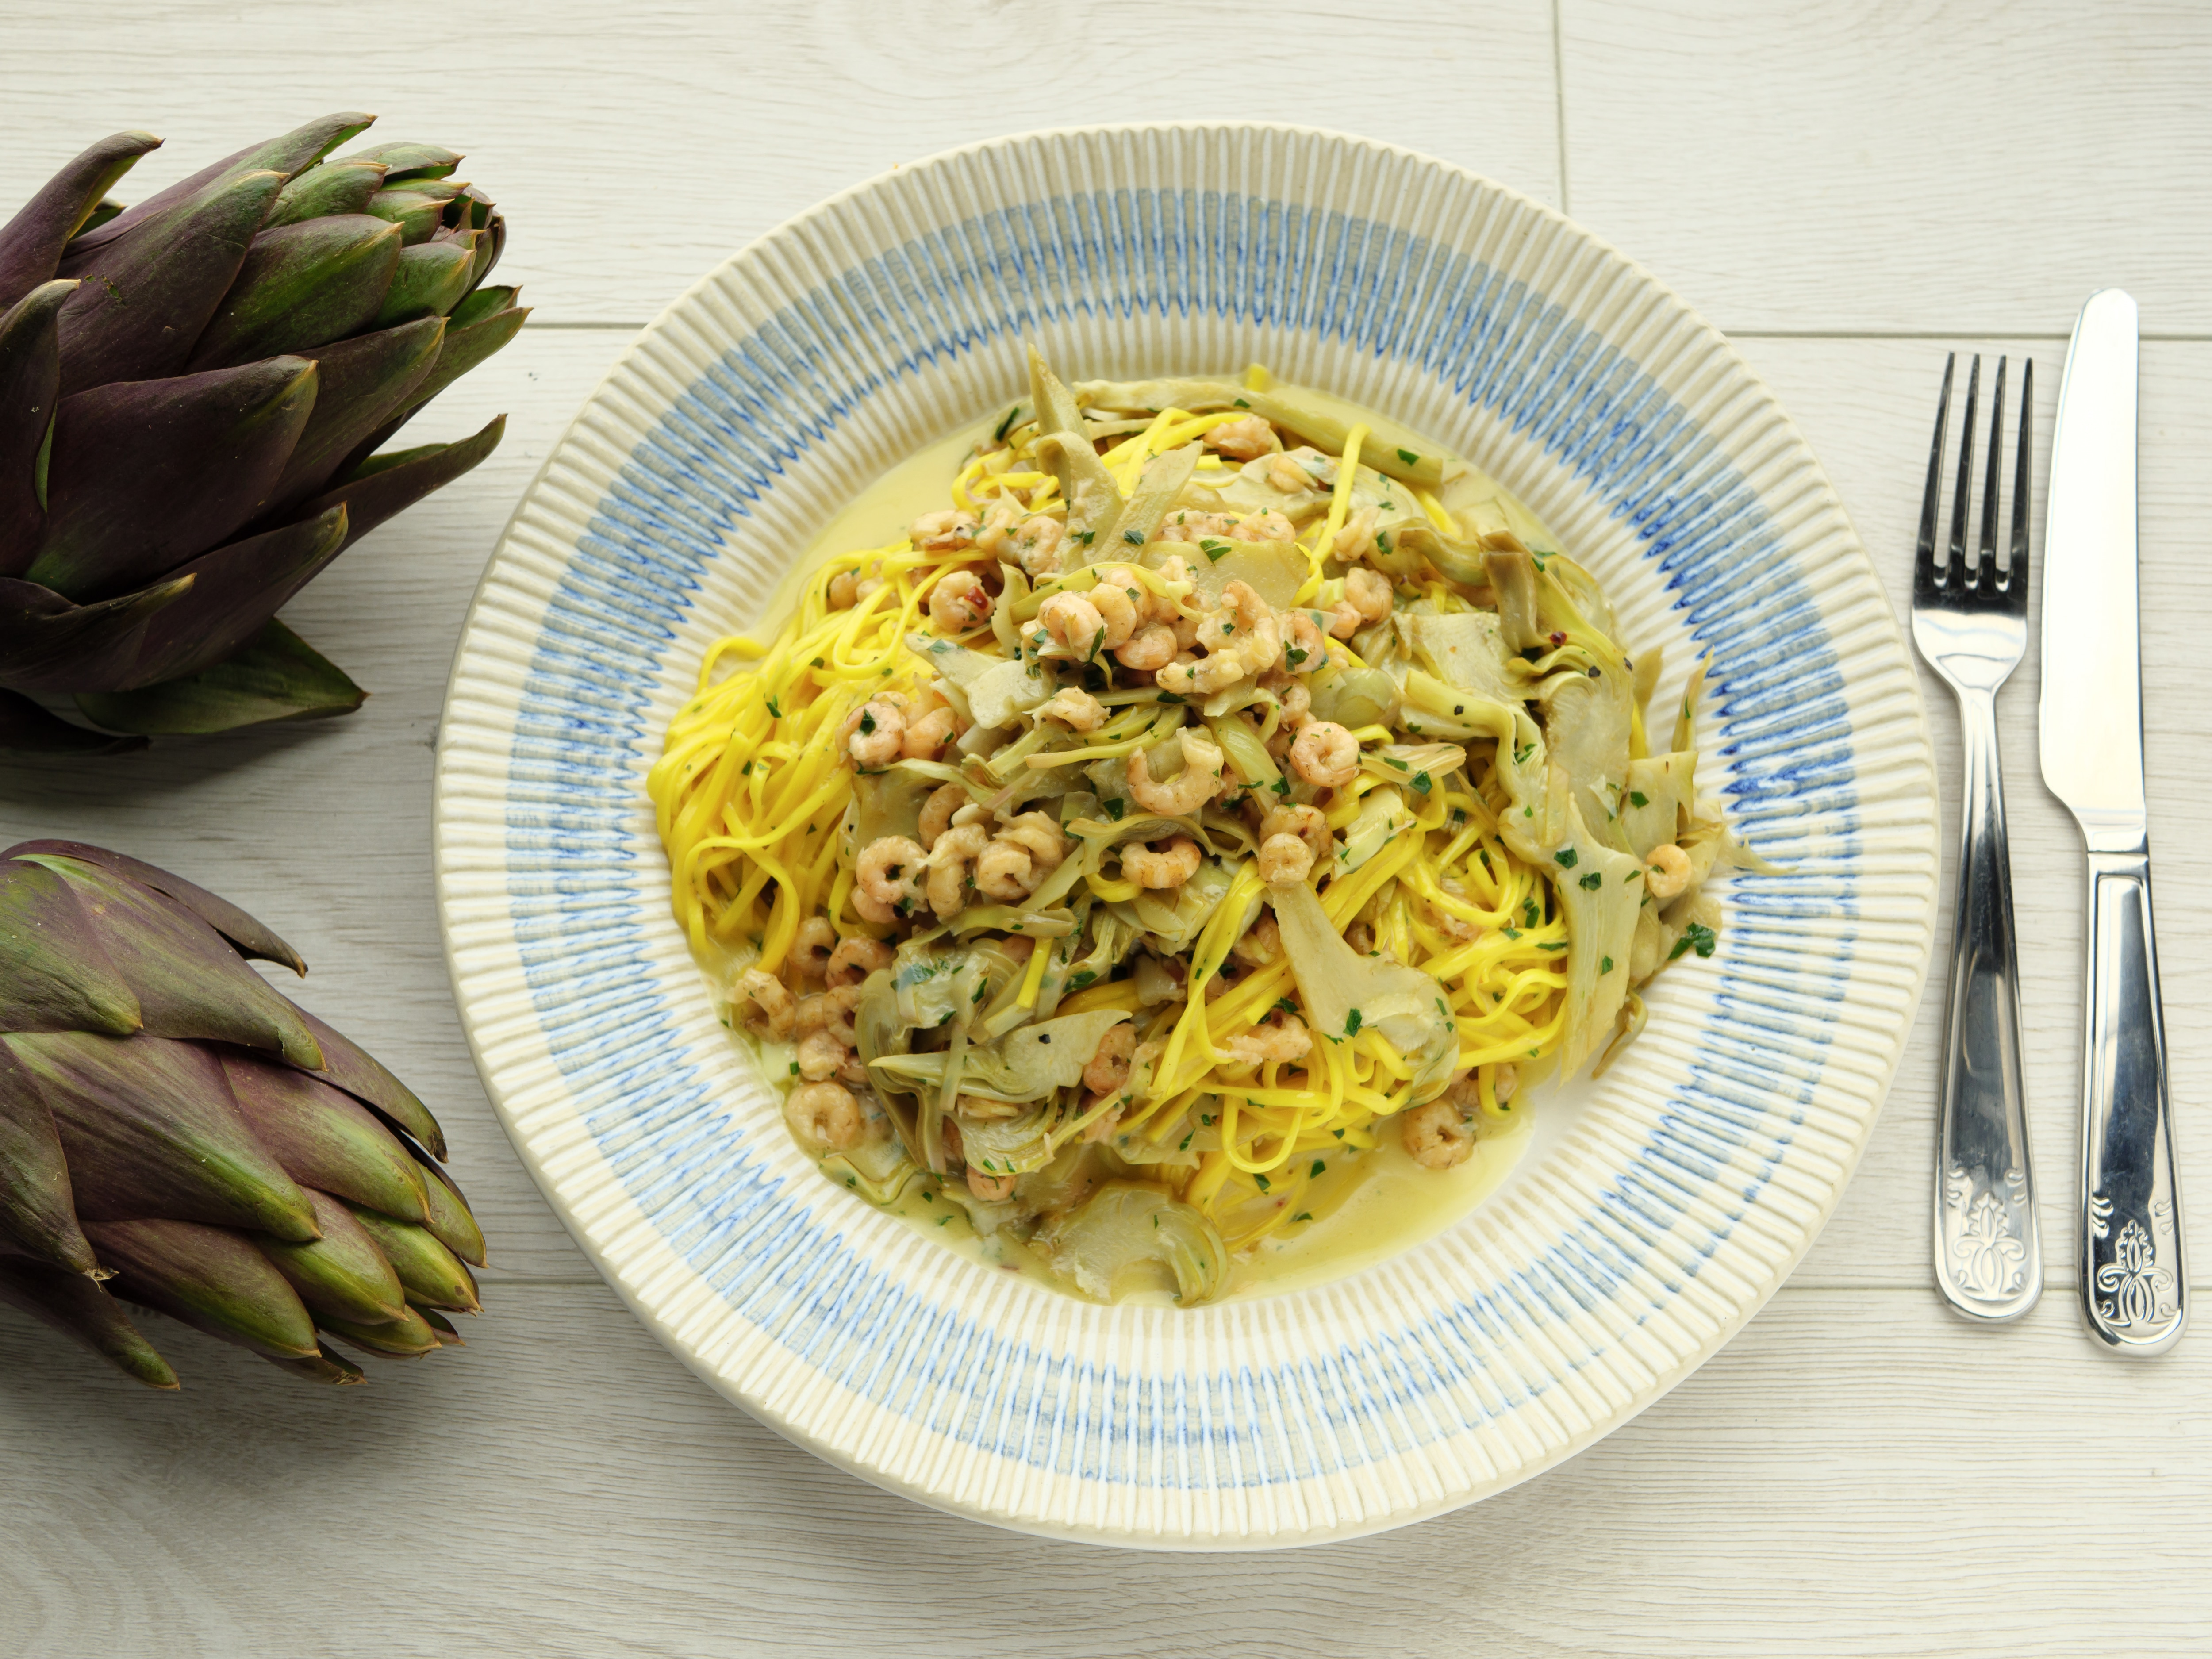 Tagliarini With Brown Shrimps, Artichokes, Butter & Parsley